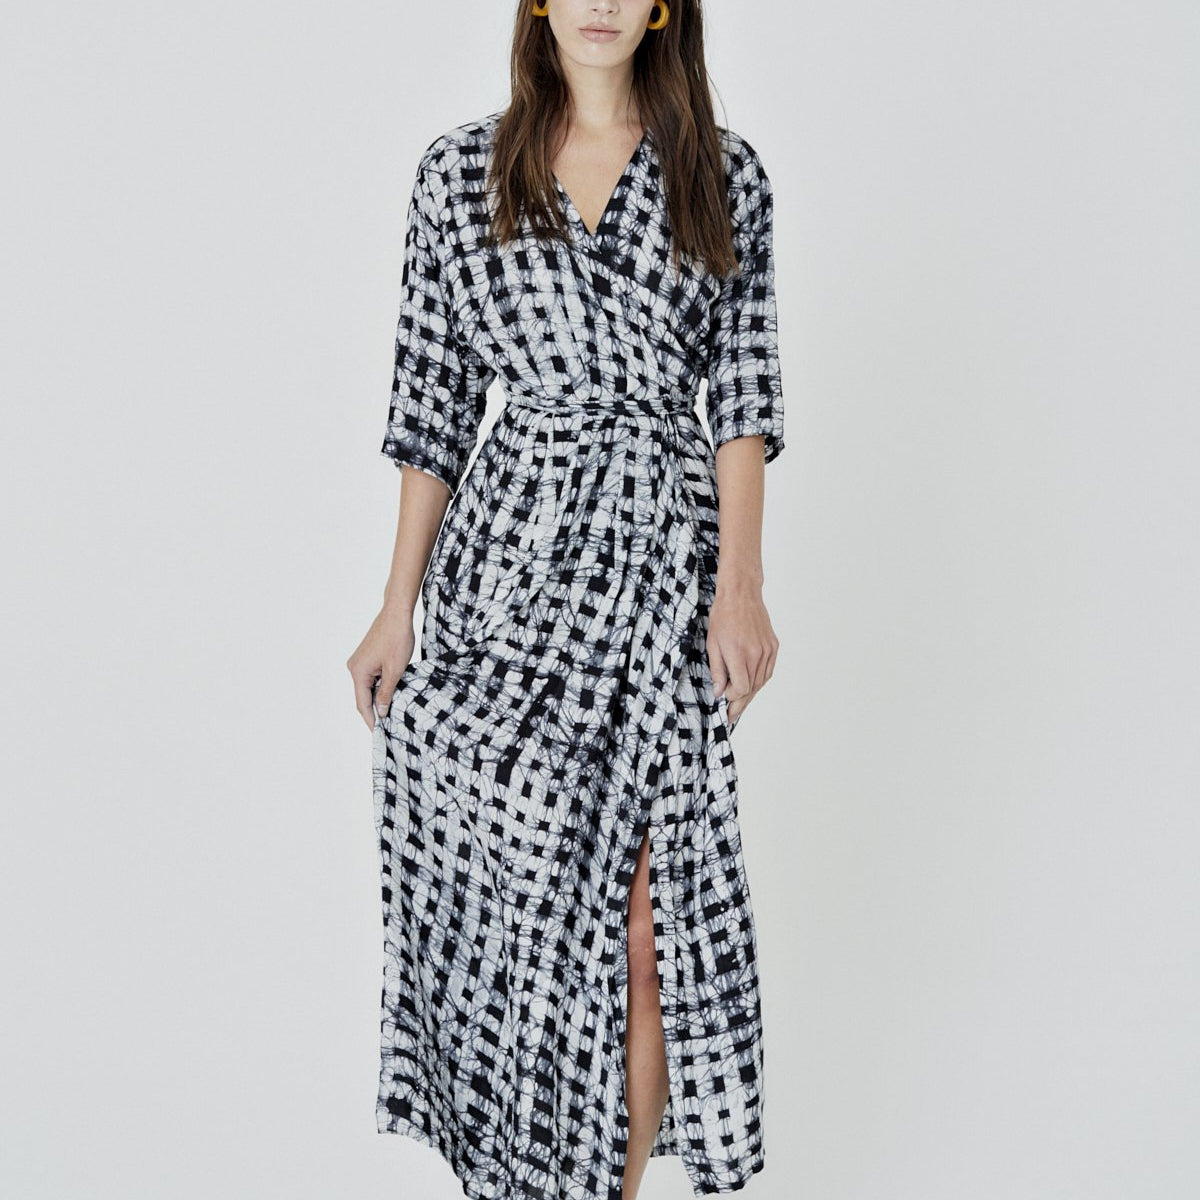 black and white checkered patterned wrap dress